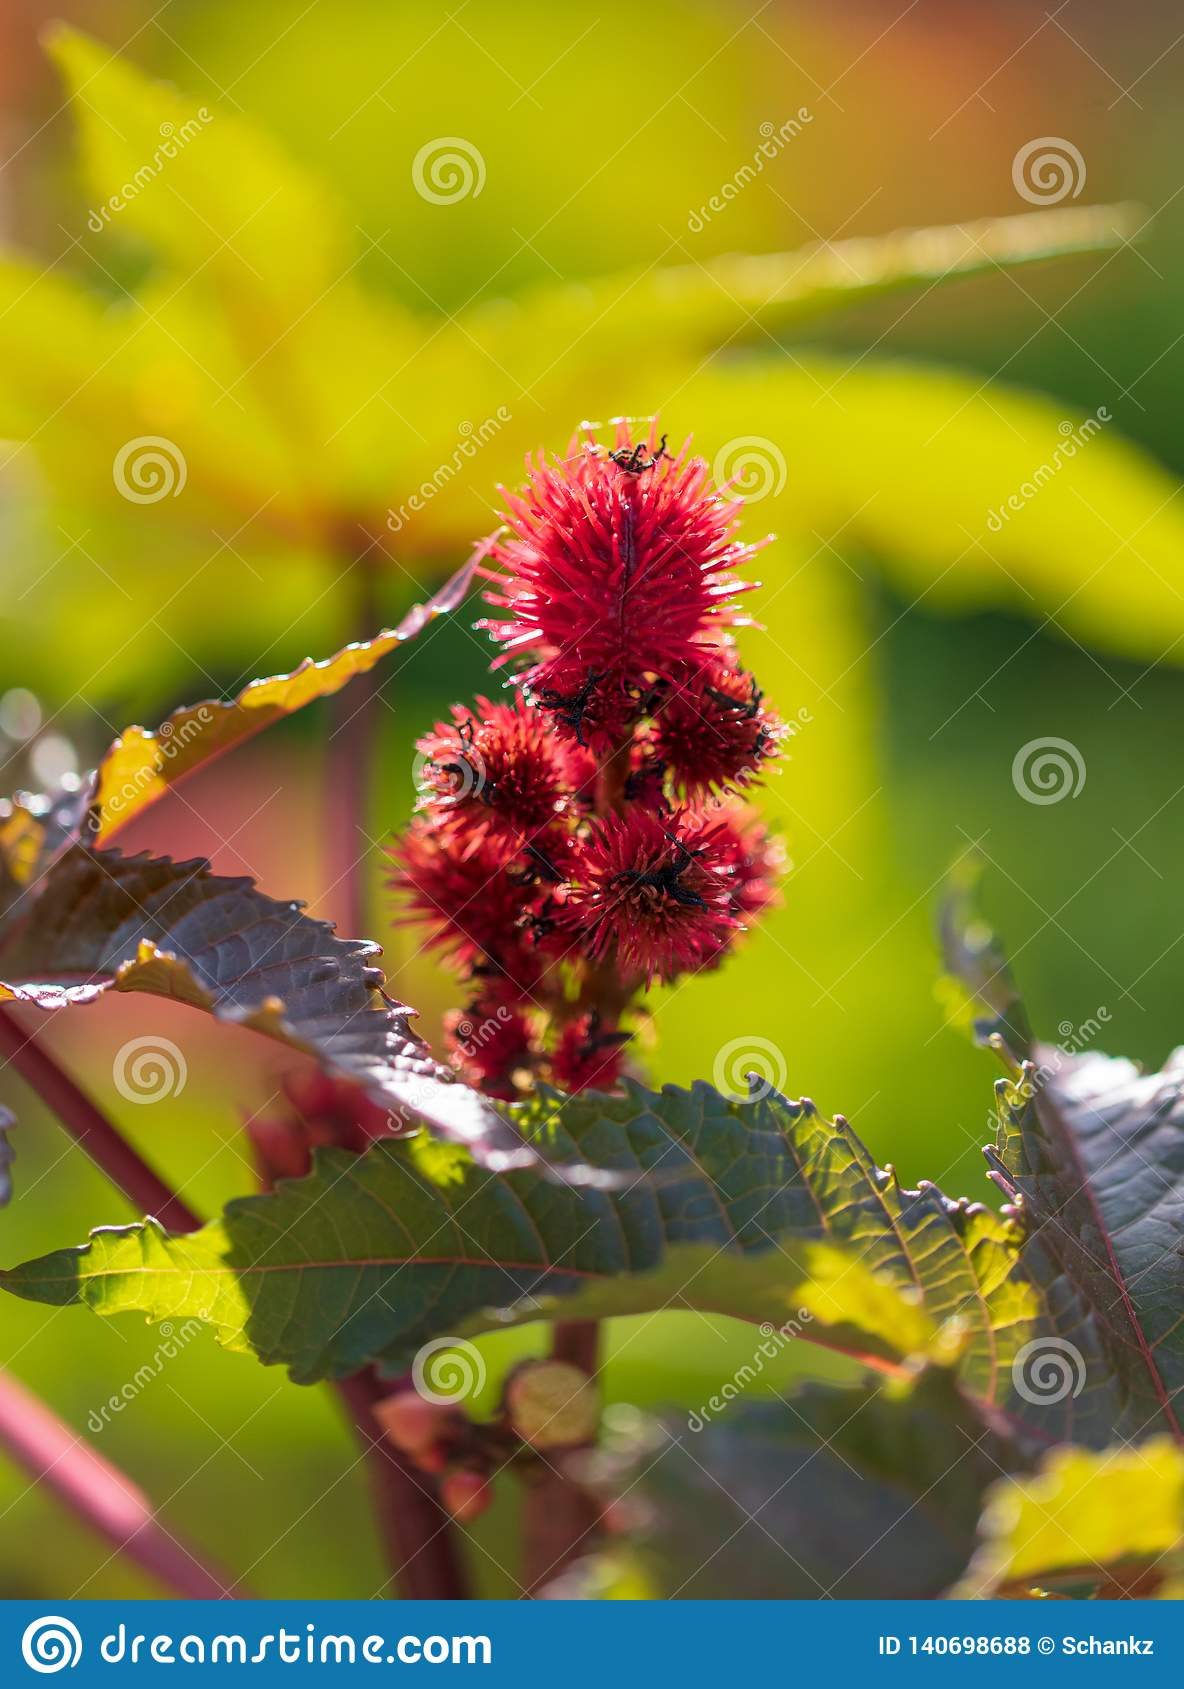 Red prickly fruits on the plant